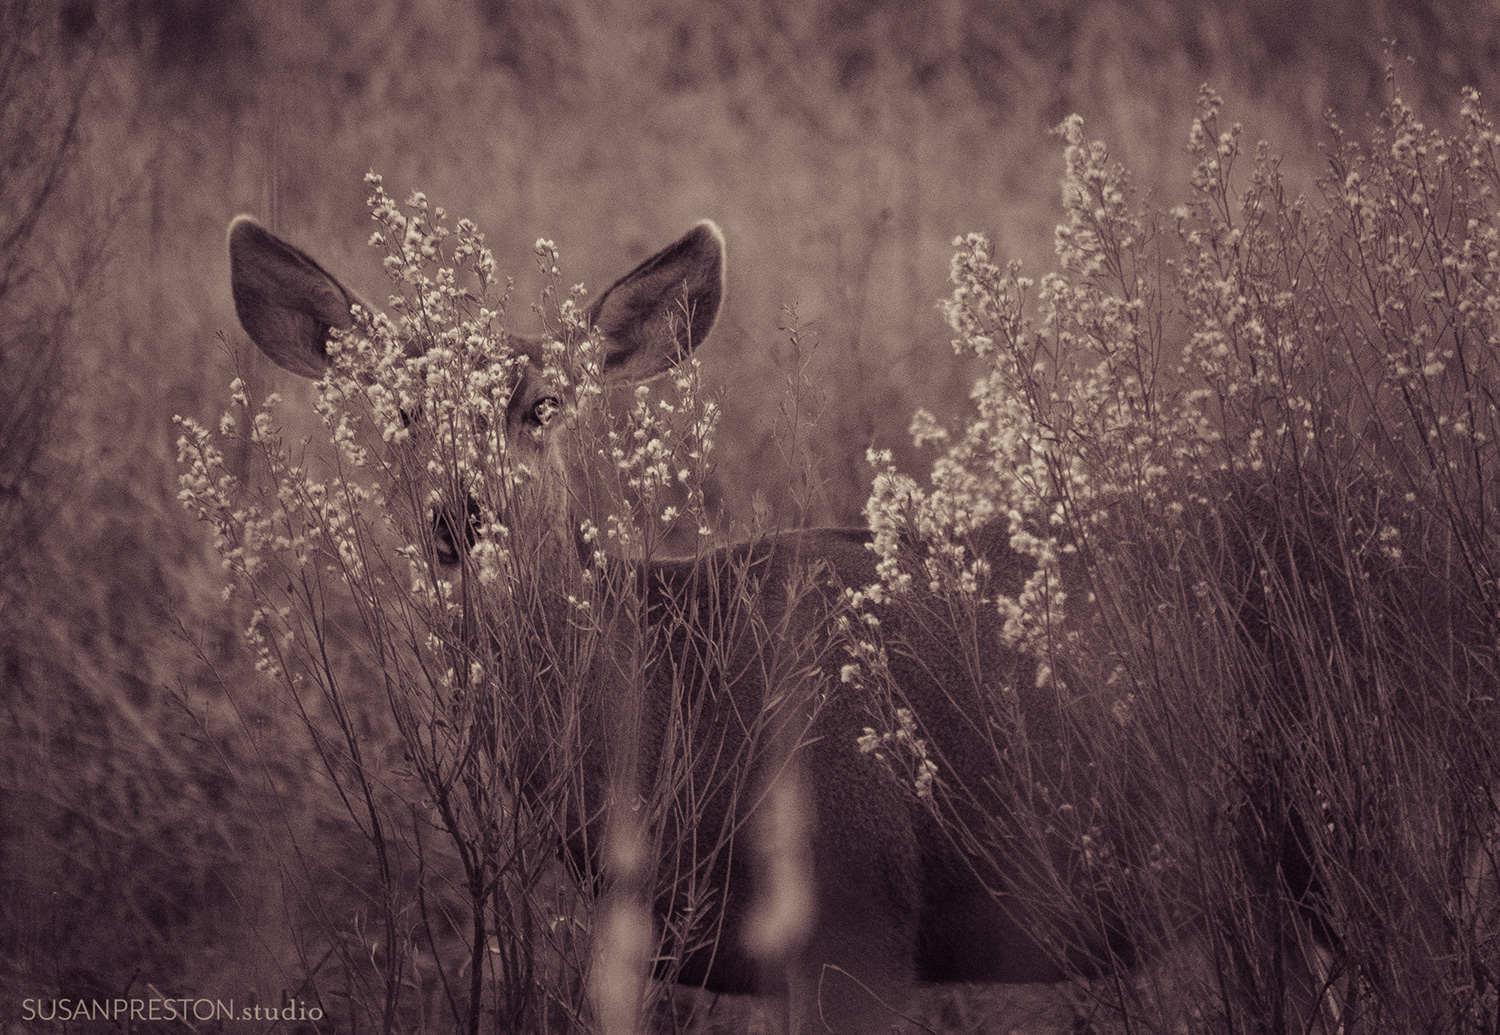 a partially hidden mule deer doe looks through the brush and into the camera in this black and white toned image from the Bosque del Apache